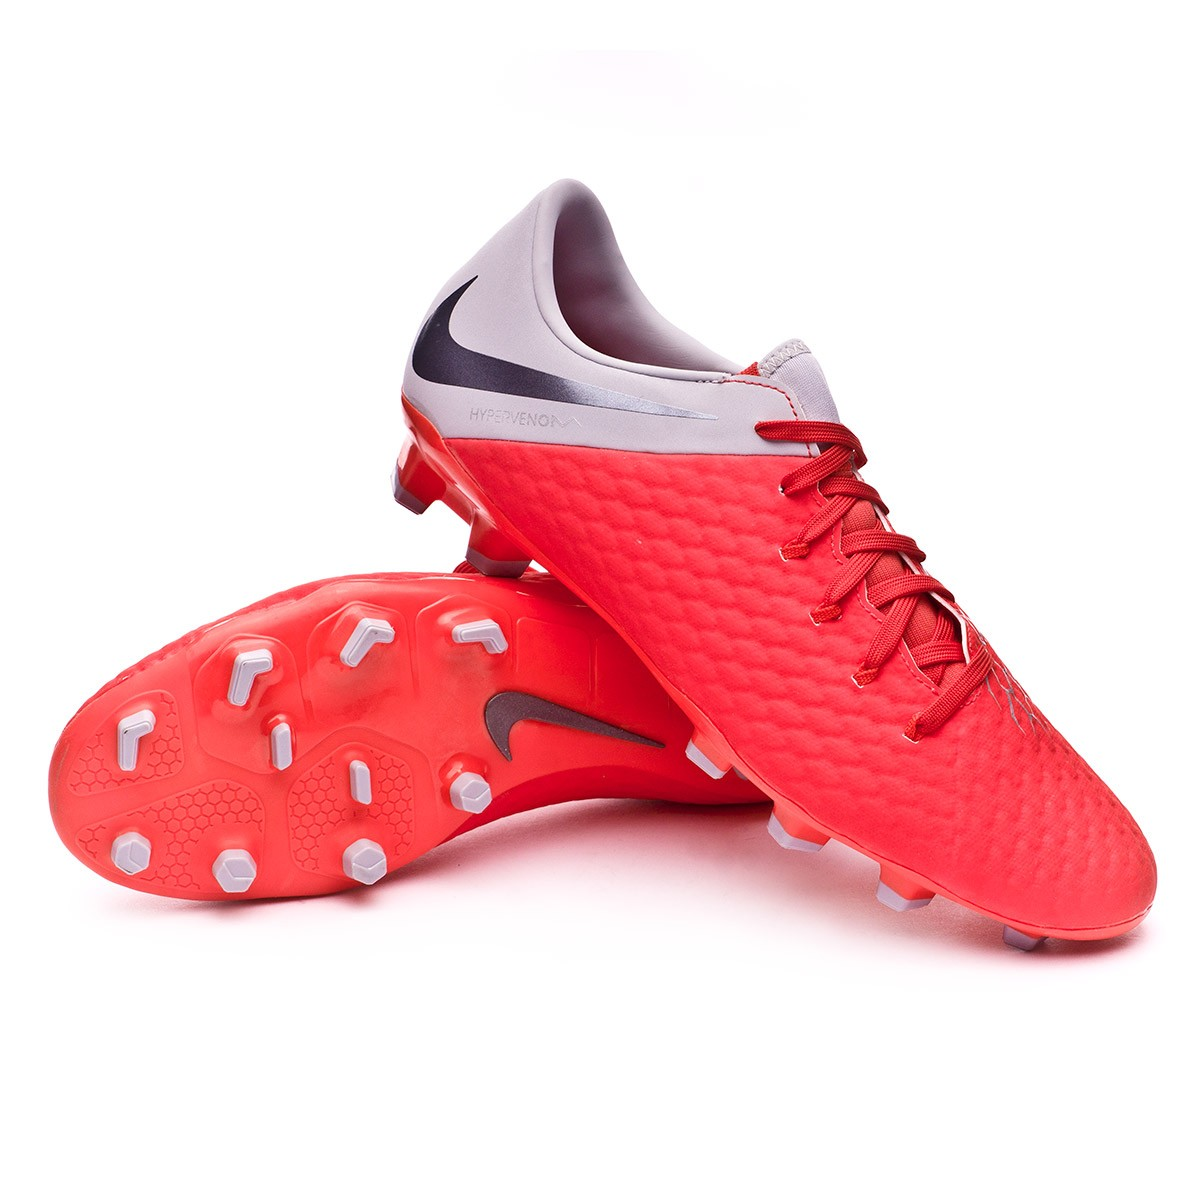 best website 5ac90 7968e Bota Hypervenom Phantom III Academy FG Light crimson-Metallic dark  grey-Wolf grey